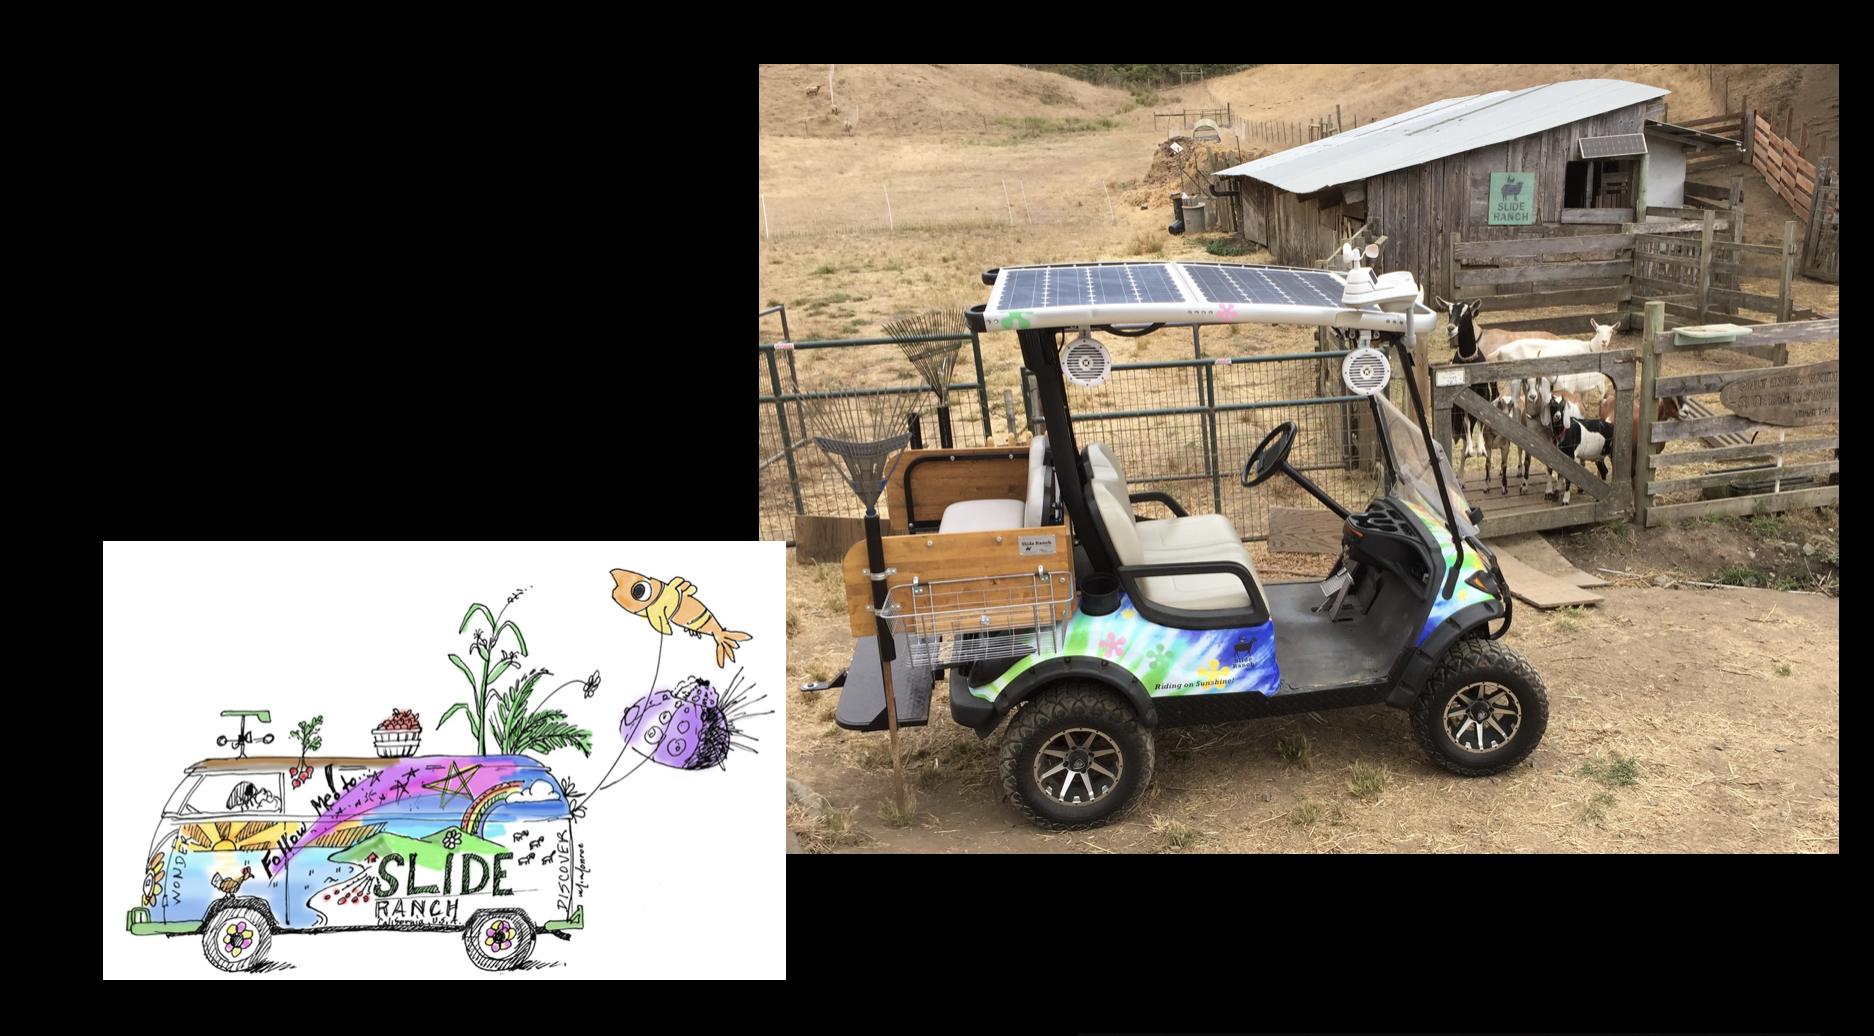 Solar eBuggy Electric Vehicle